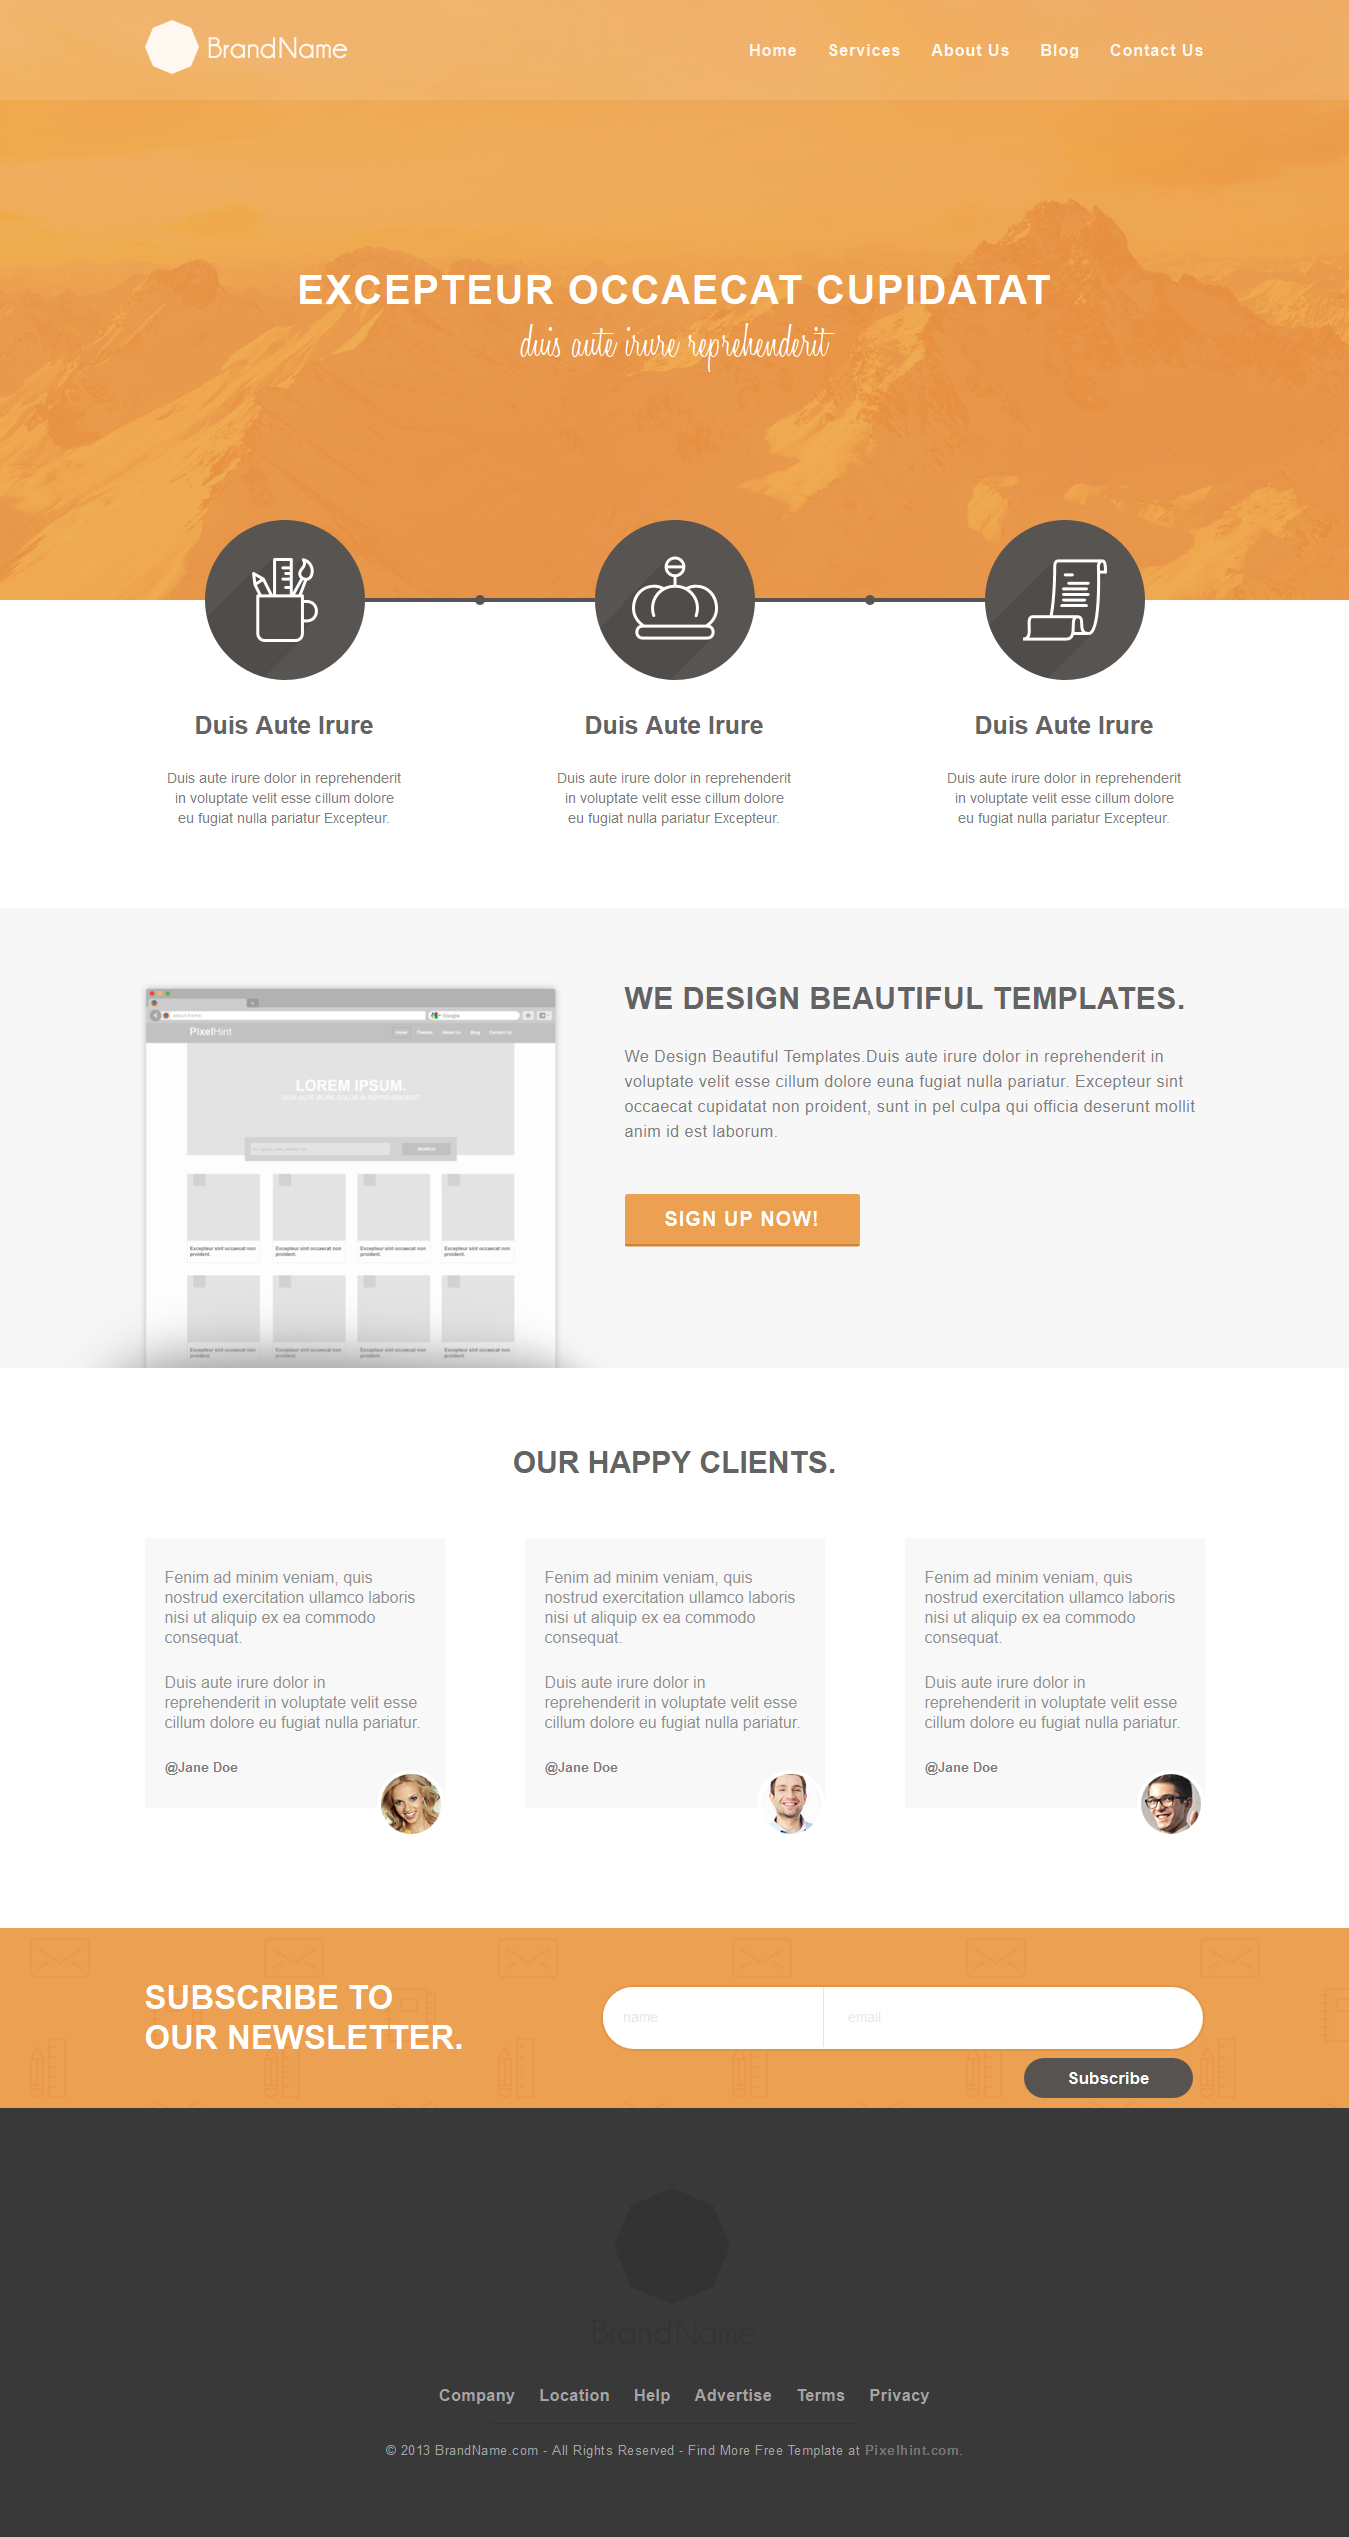 Free Beautiful And Clean Html5 Template Freebie Html5template Freedesign Web Design Web Design Tutorials Html5 Templates